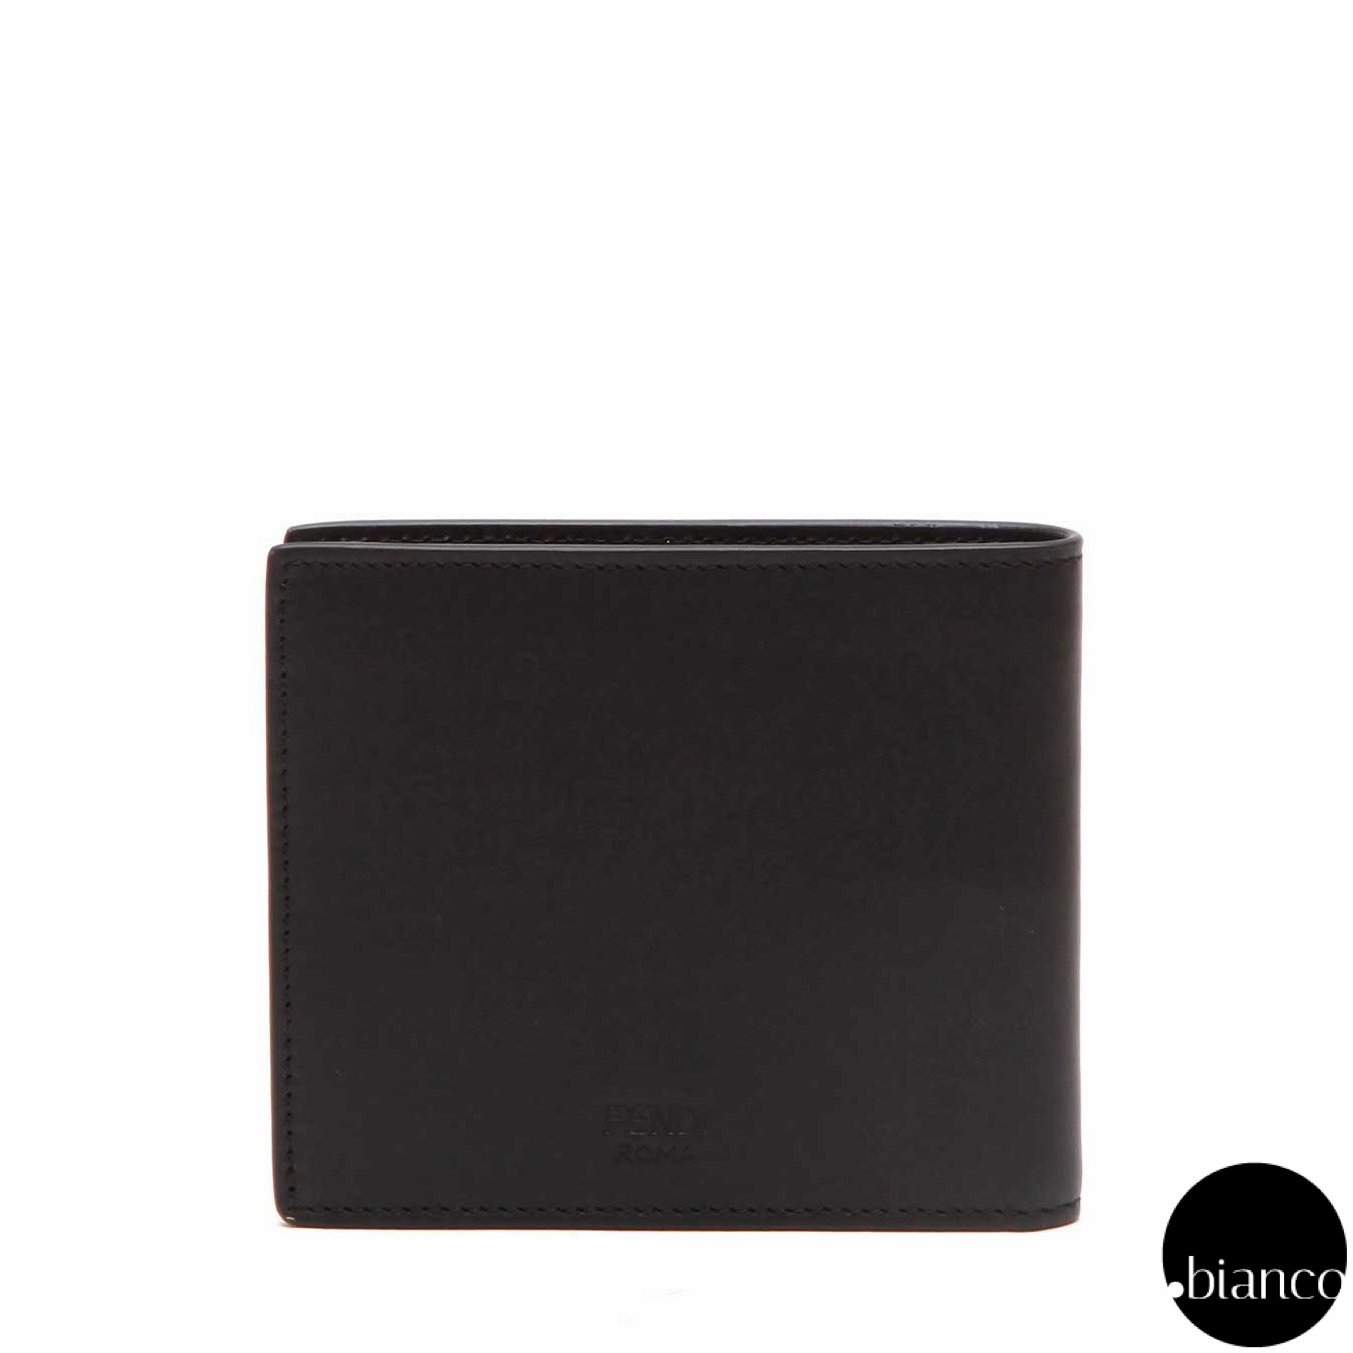 関税送料込FENDI BAGBUGS WALLET METALIC BUGSEYE 二つ折り財布